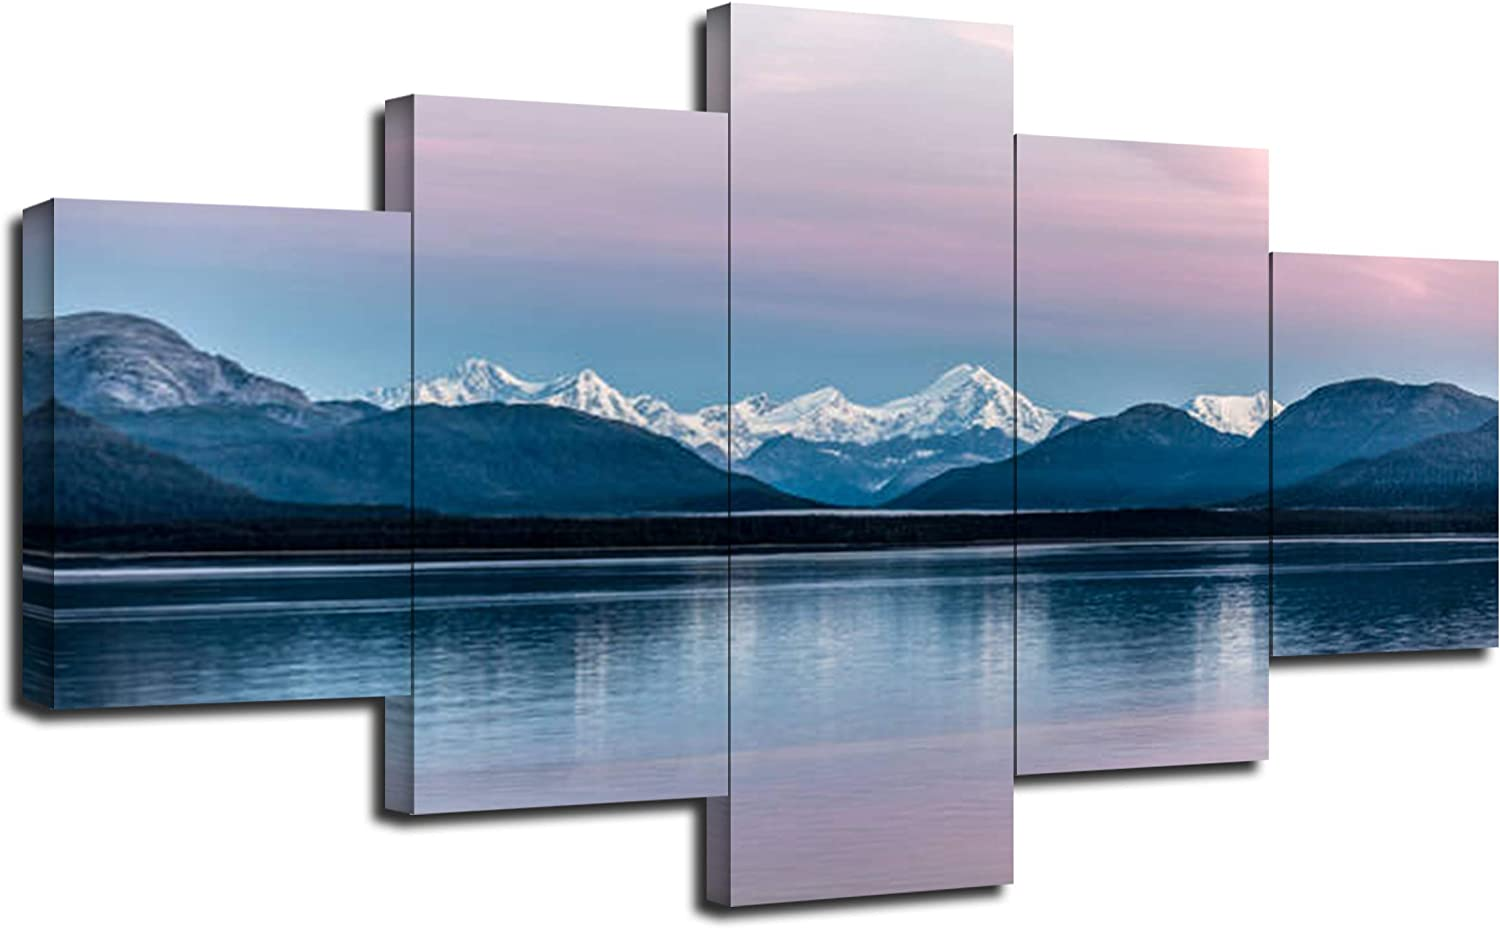 Glacier Bay National Park Wall Decor USA Alaska Mountain Paintings on Canvas Pictures Framed Art Printing 5 Pieces Posters with Frame Ready to Hang(60''Wx32''H)